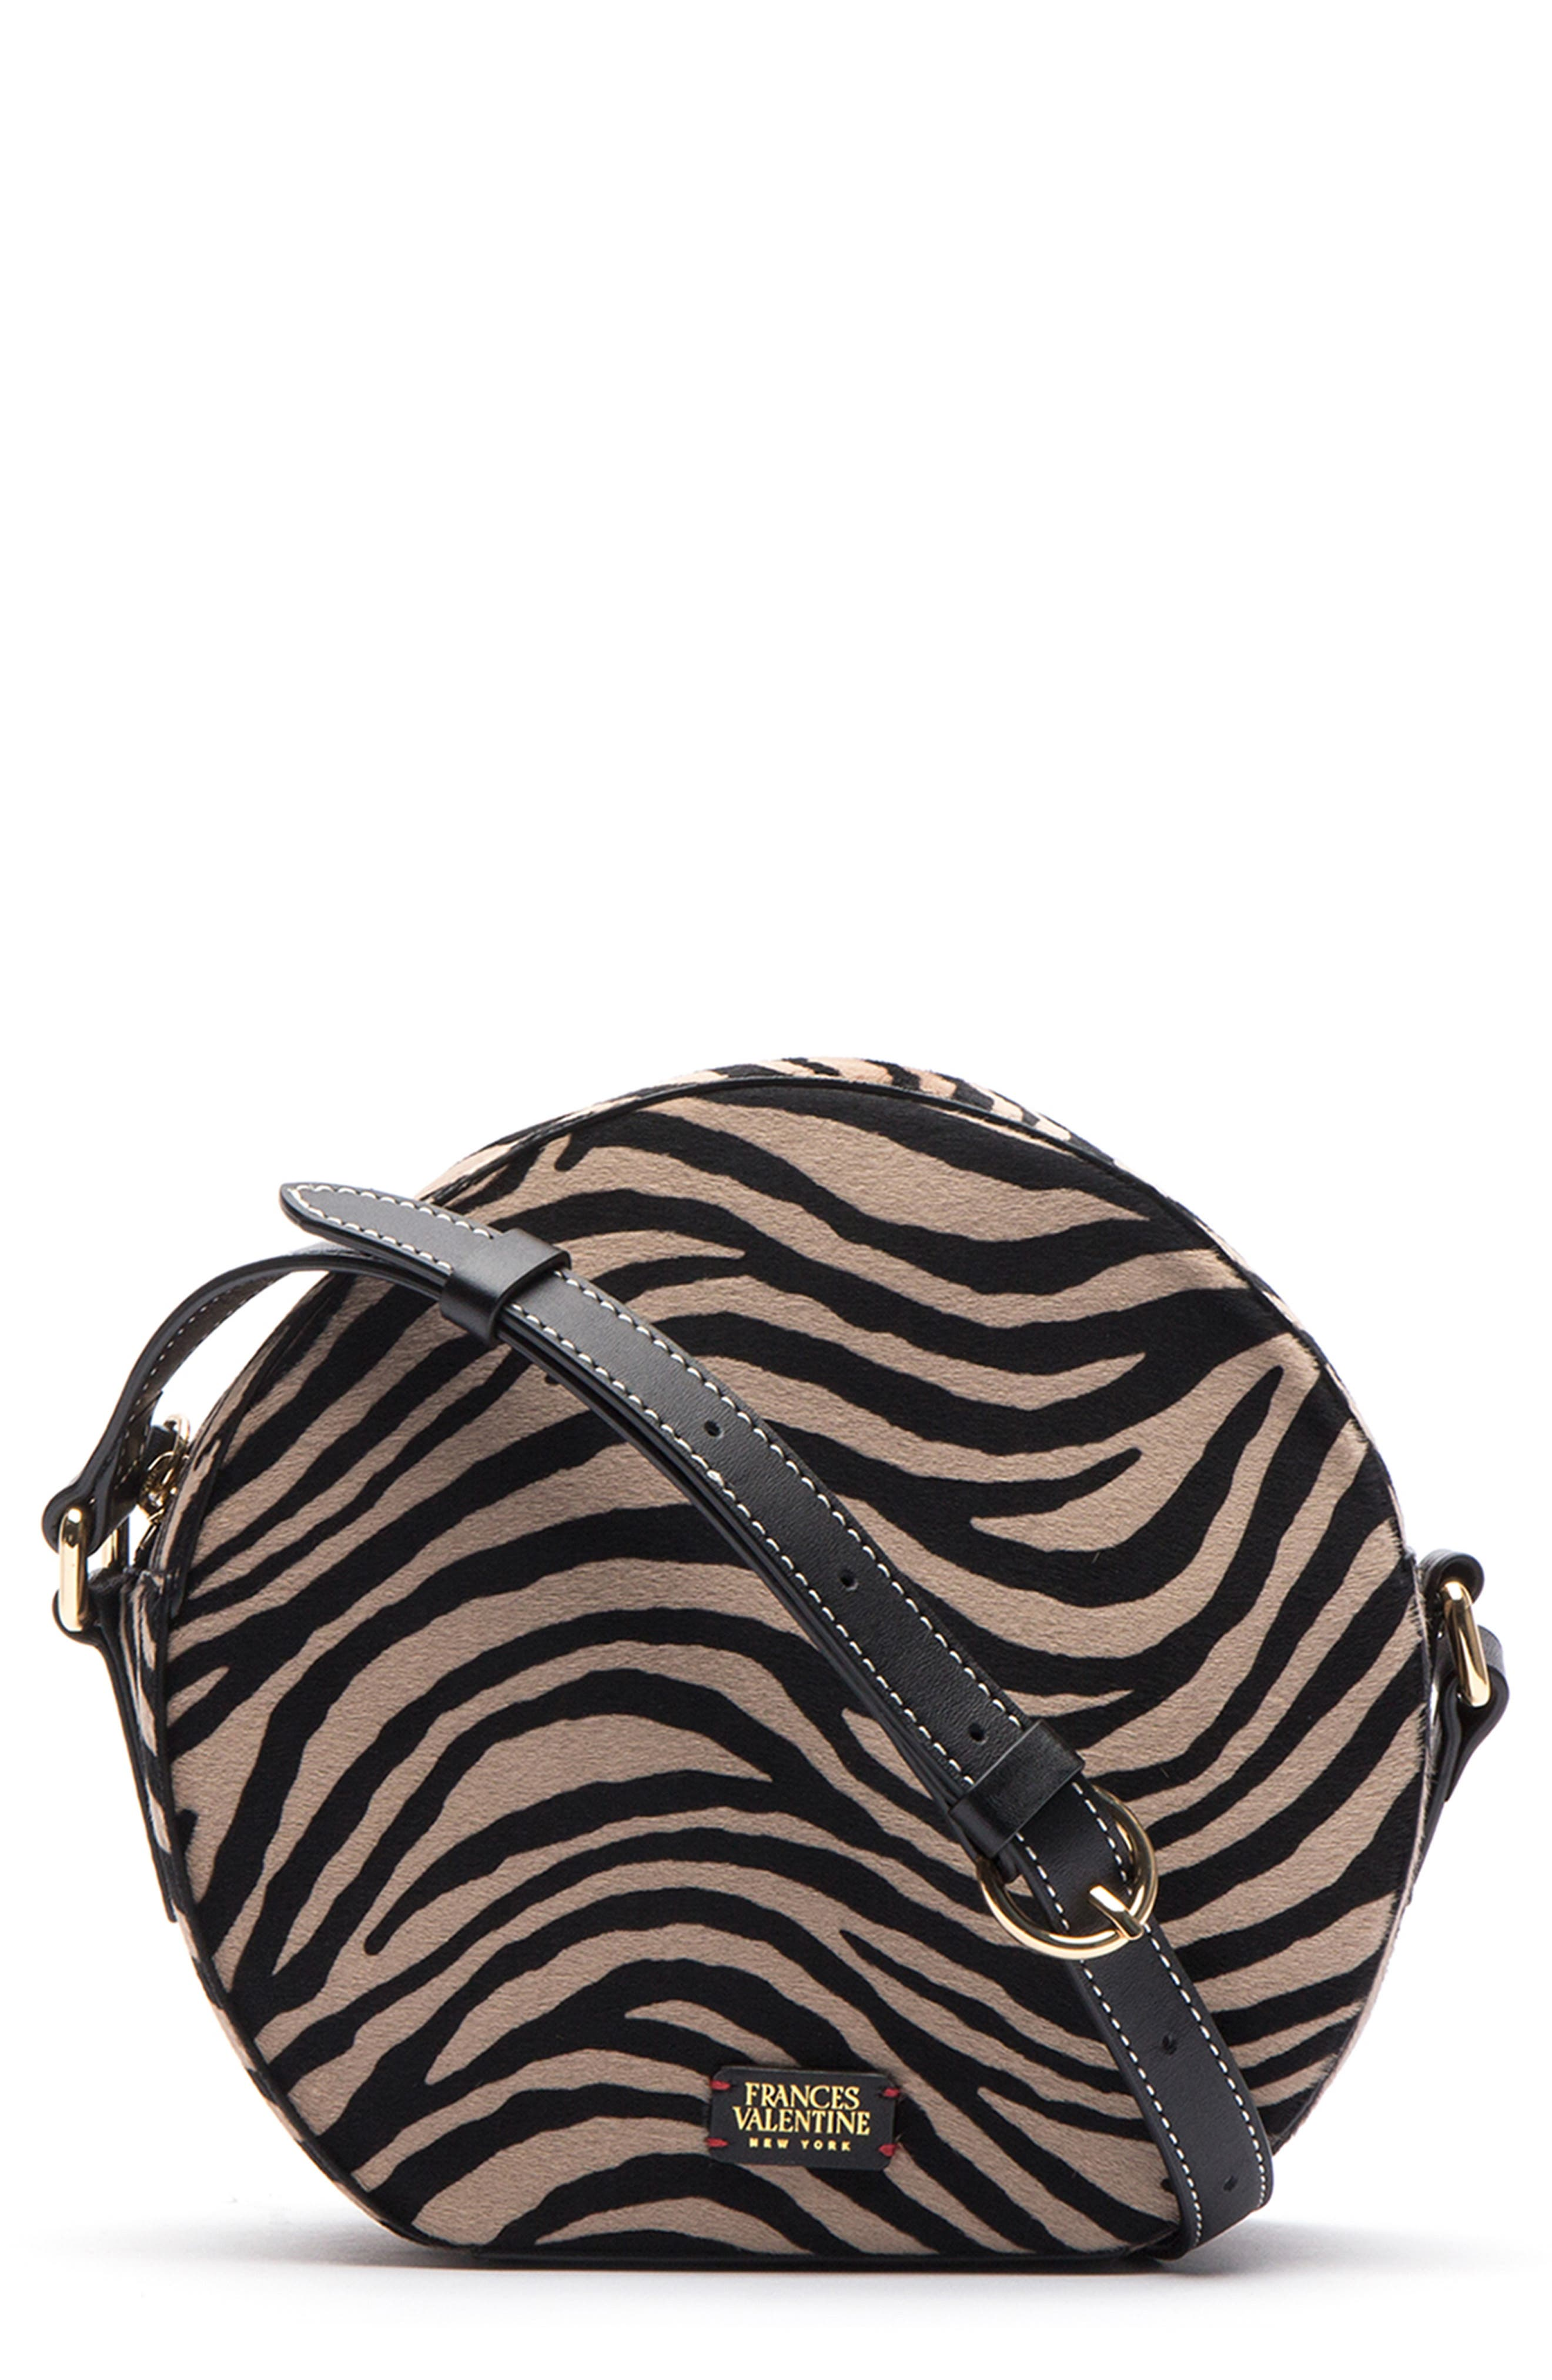 Frances Valetine Lulu Genuine Calf Hair Round Crossbody Bag,                             Main thumbnail 1, color,                             ZEBRA